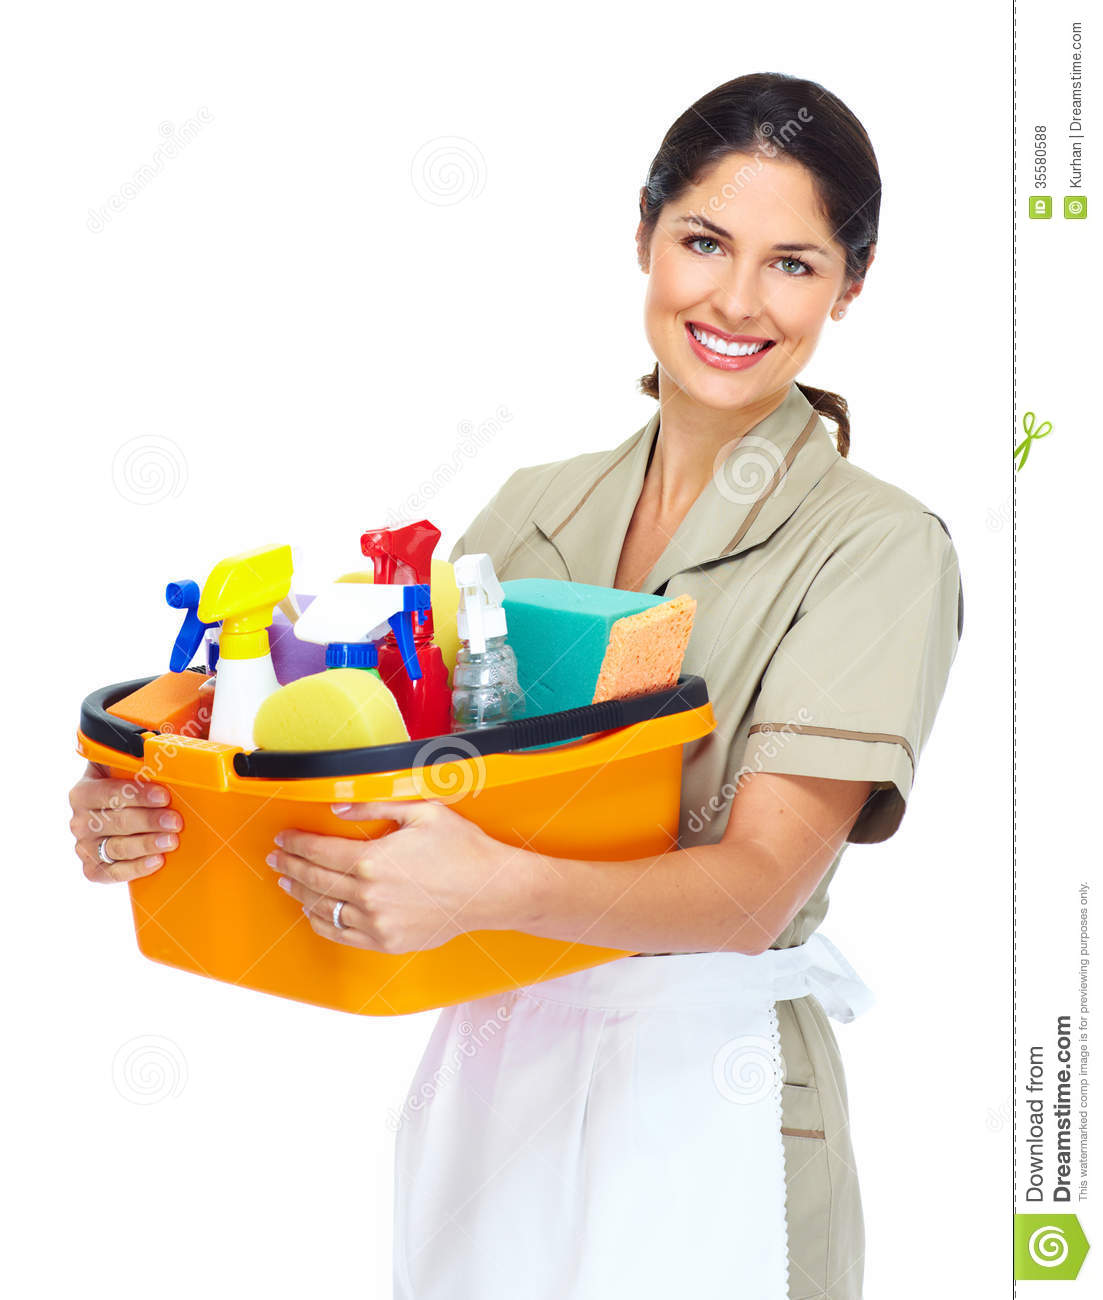 young smiling cleaner woman stock photo image of house lady